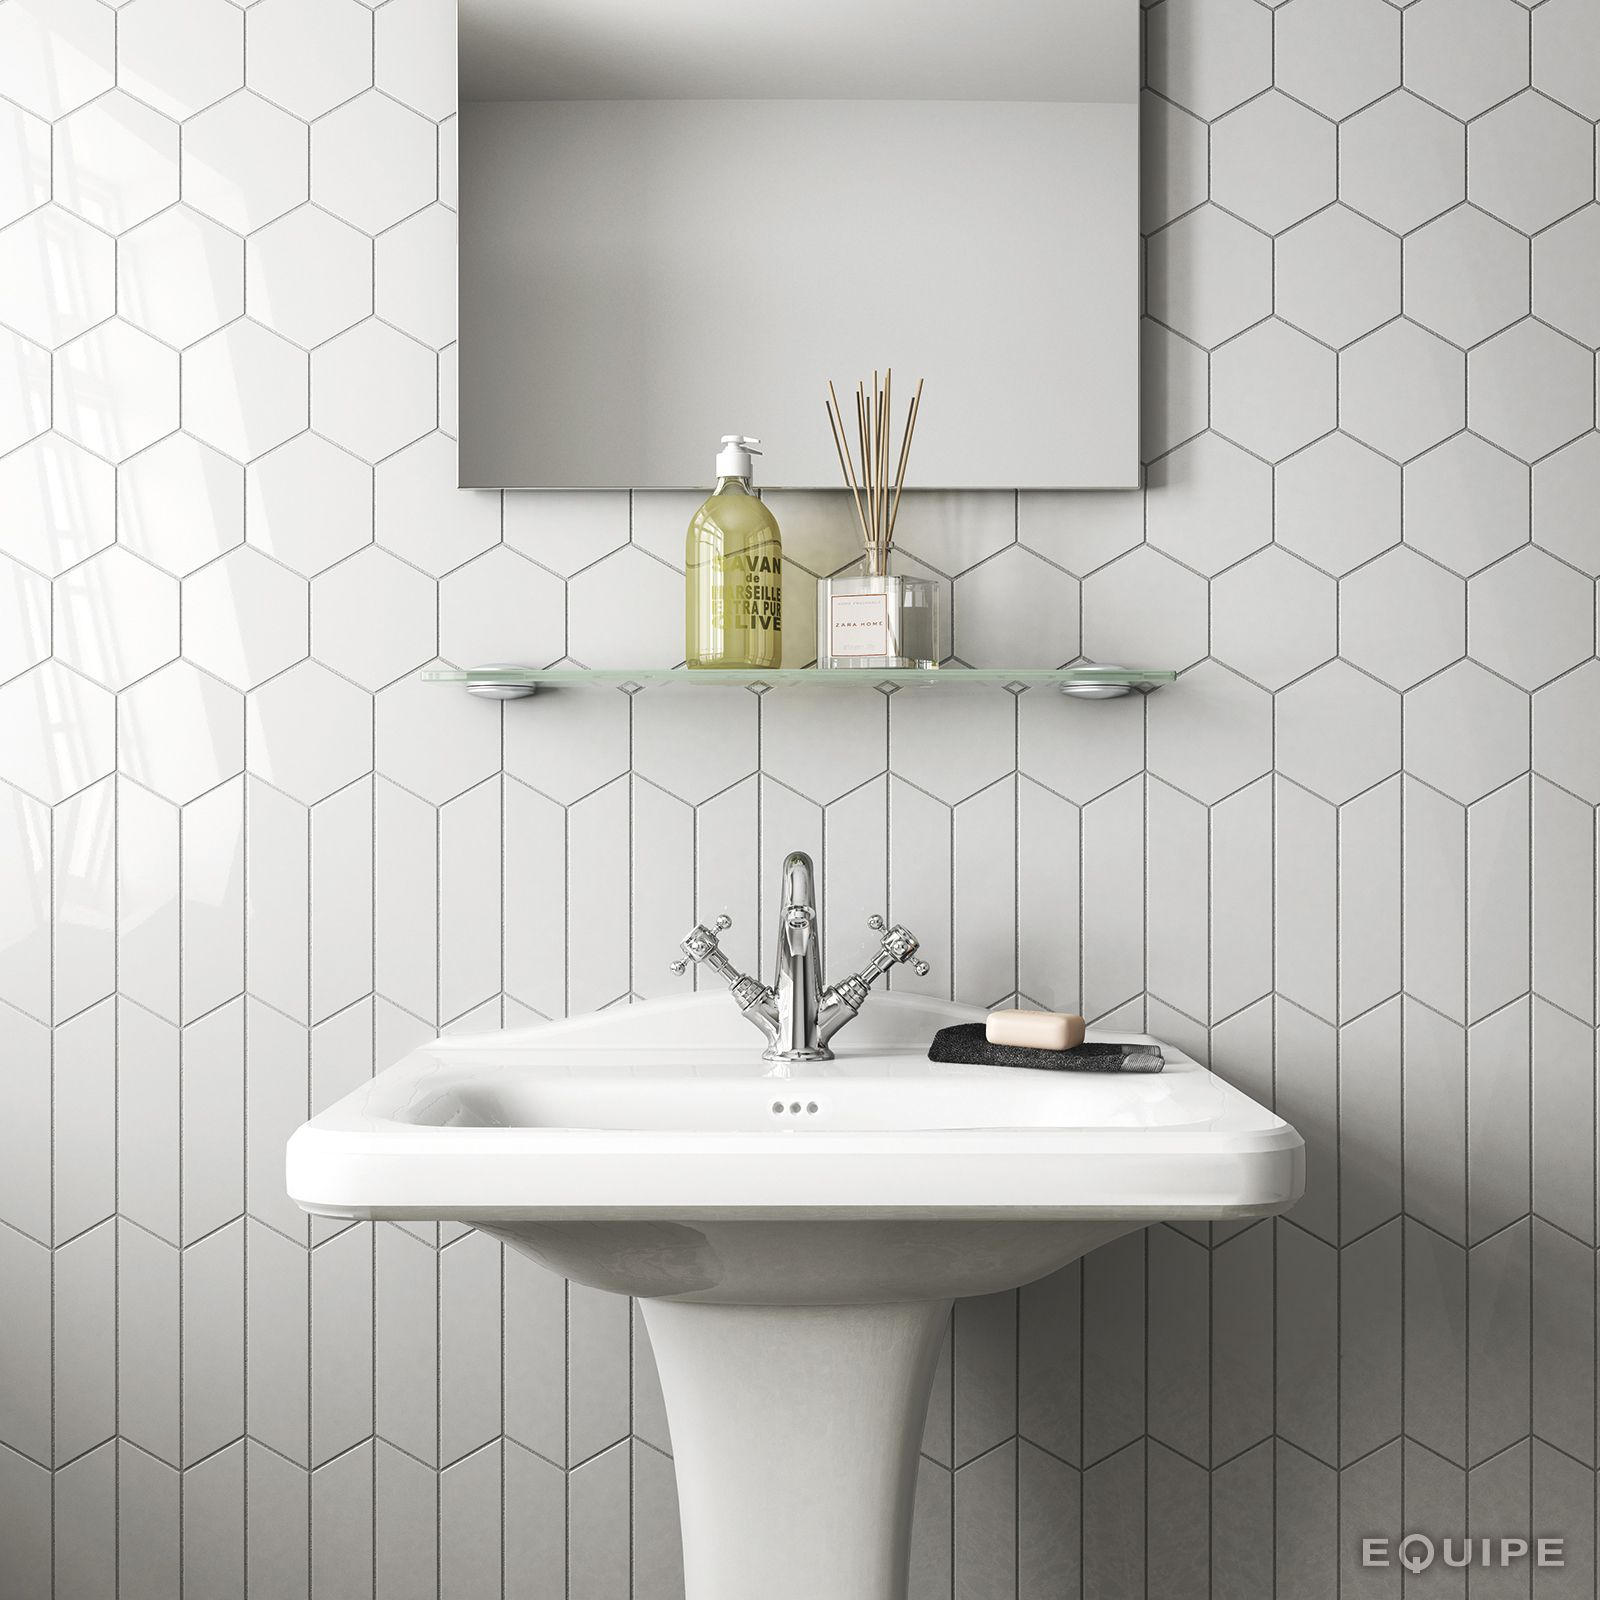 15+ Luxury Bathroom Tile Patterns Ideas | stephen leon// texture ...